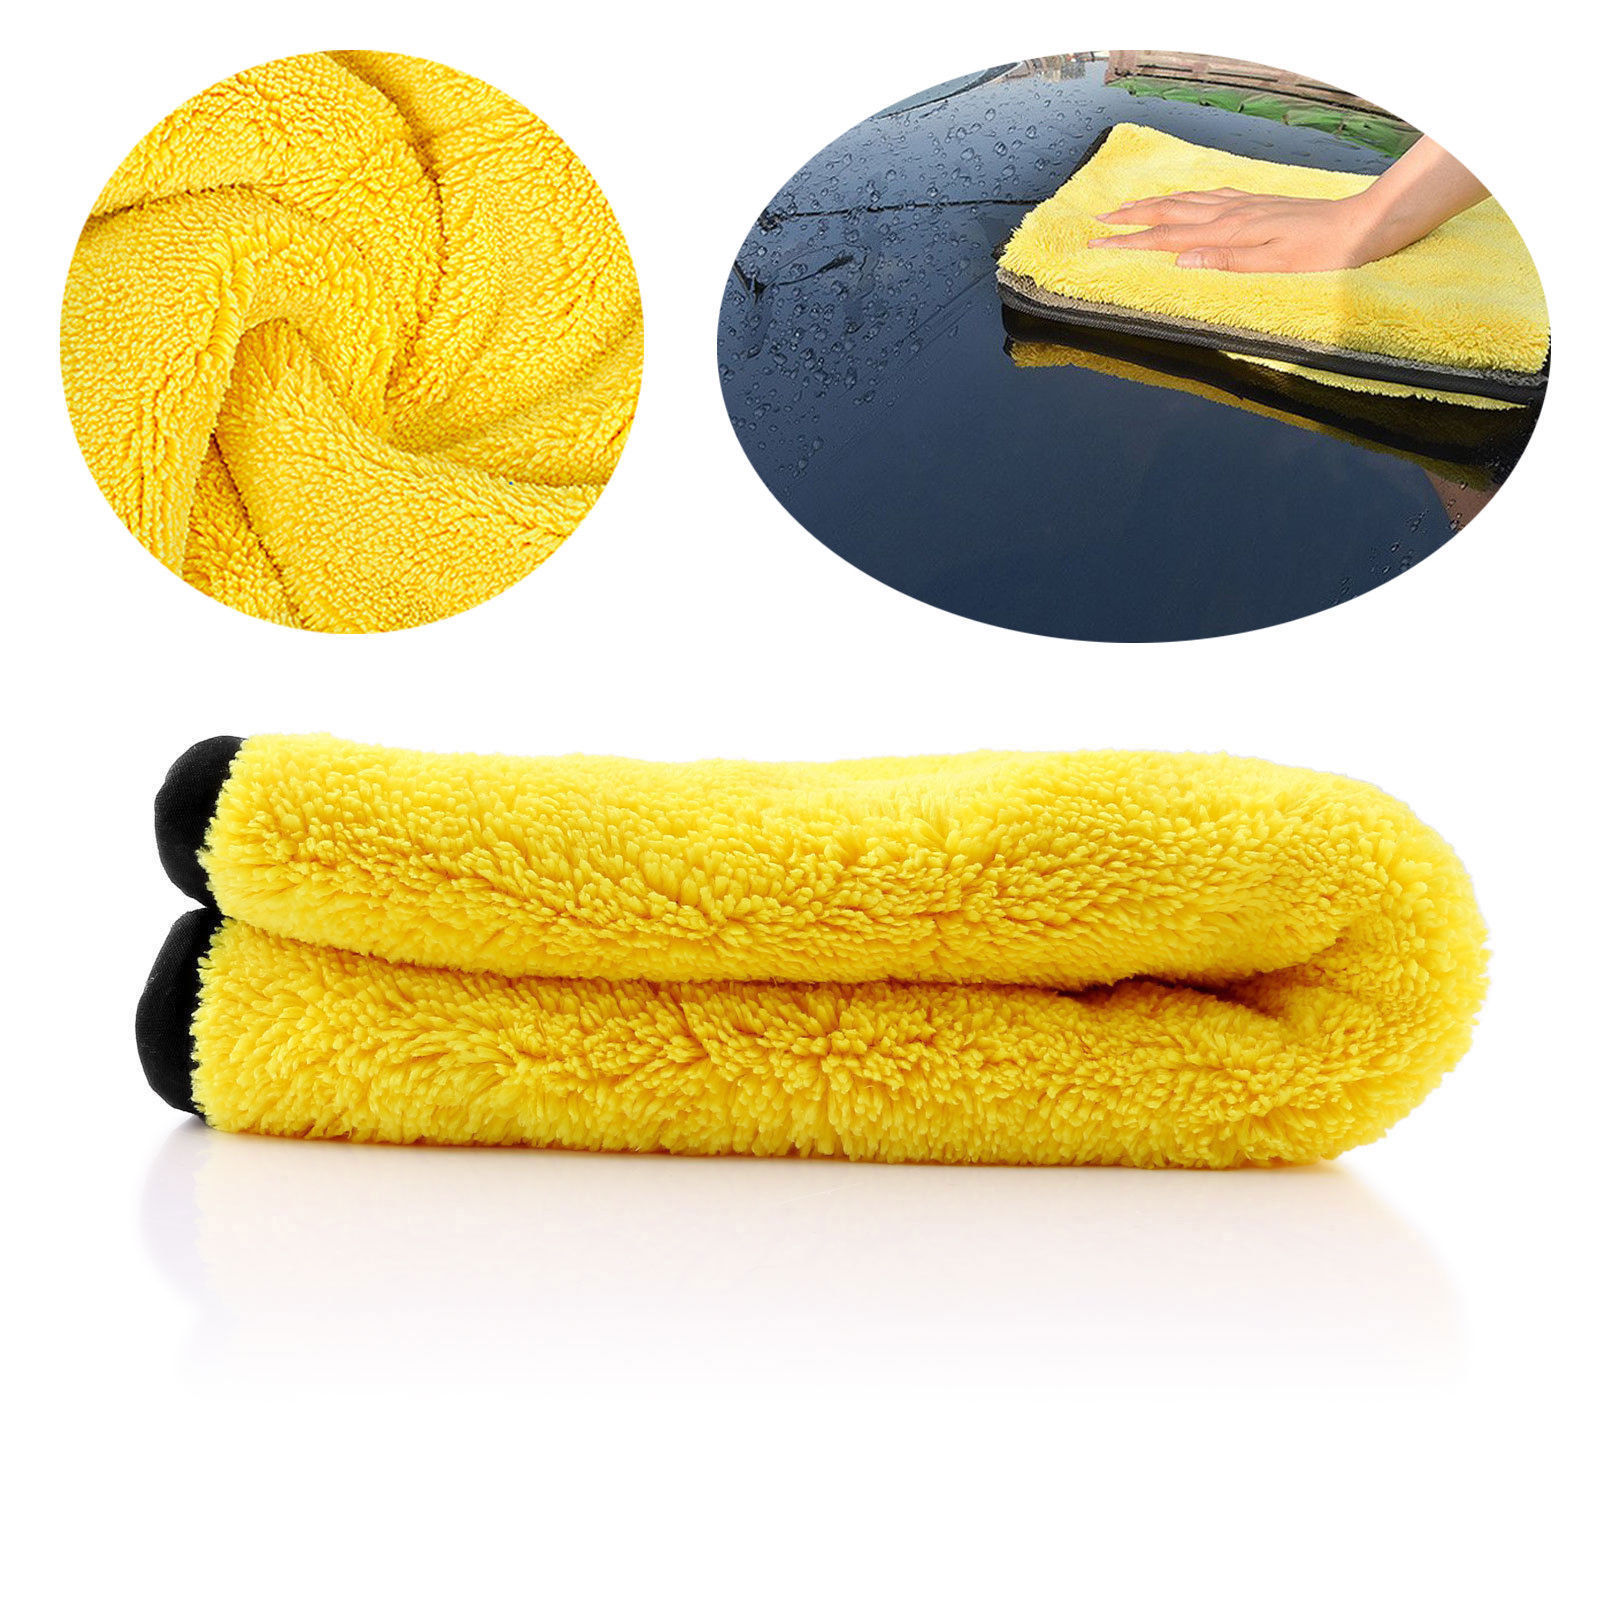 4 Size Super Absorbent Car Wash Cloth Microfiber Towel Cleaning Drying Cloths Rag Detailing Car Towel Car Care Polishing 6